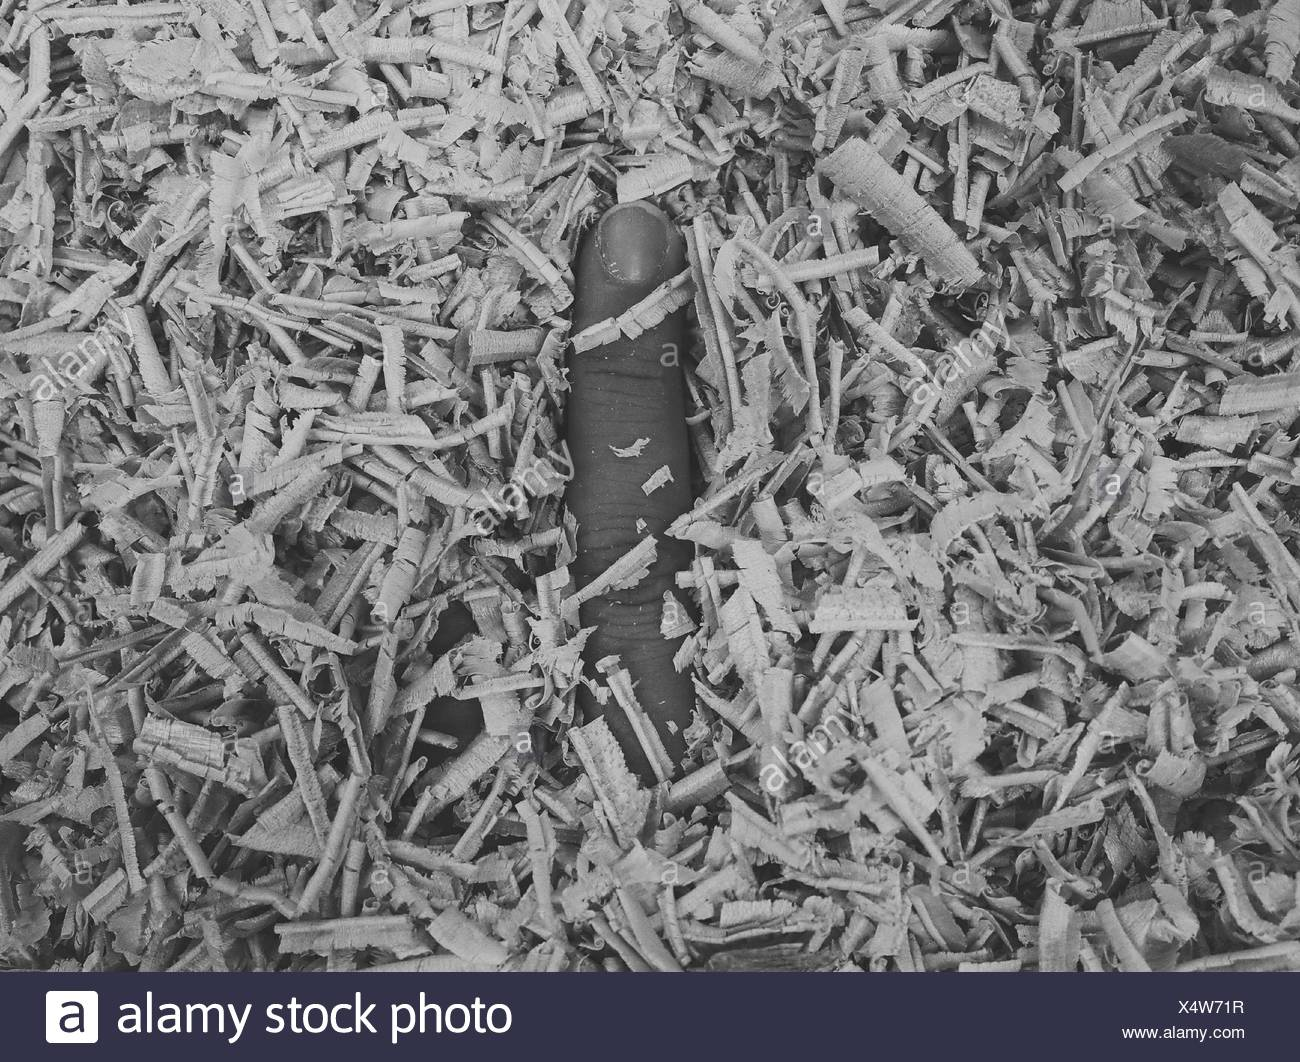 Person's Finger In Sawdust - Stock Image